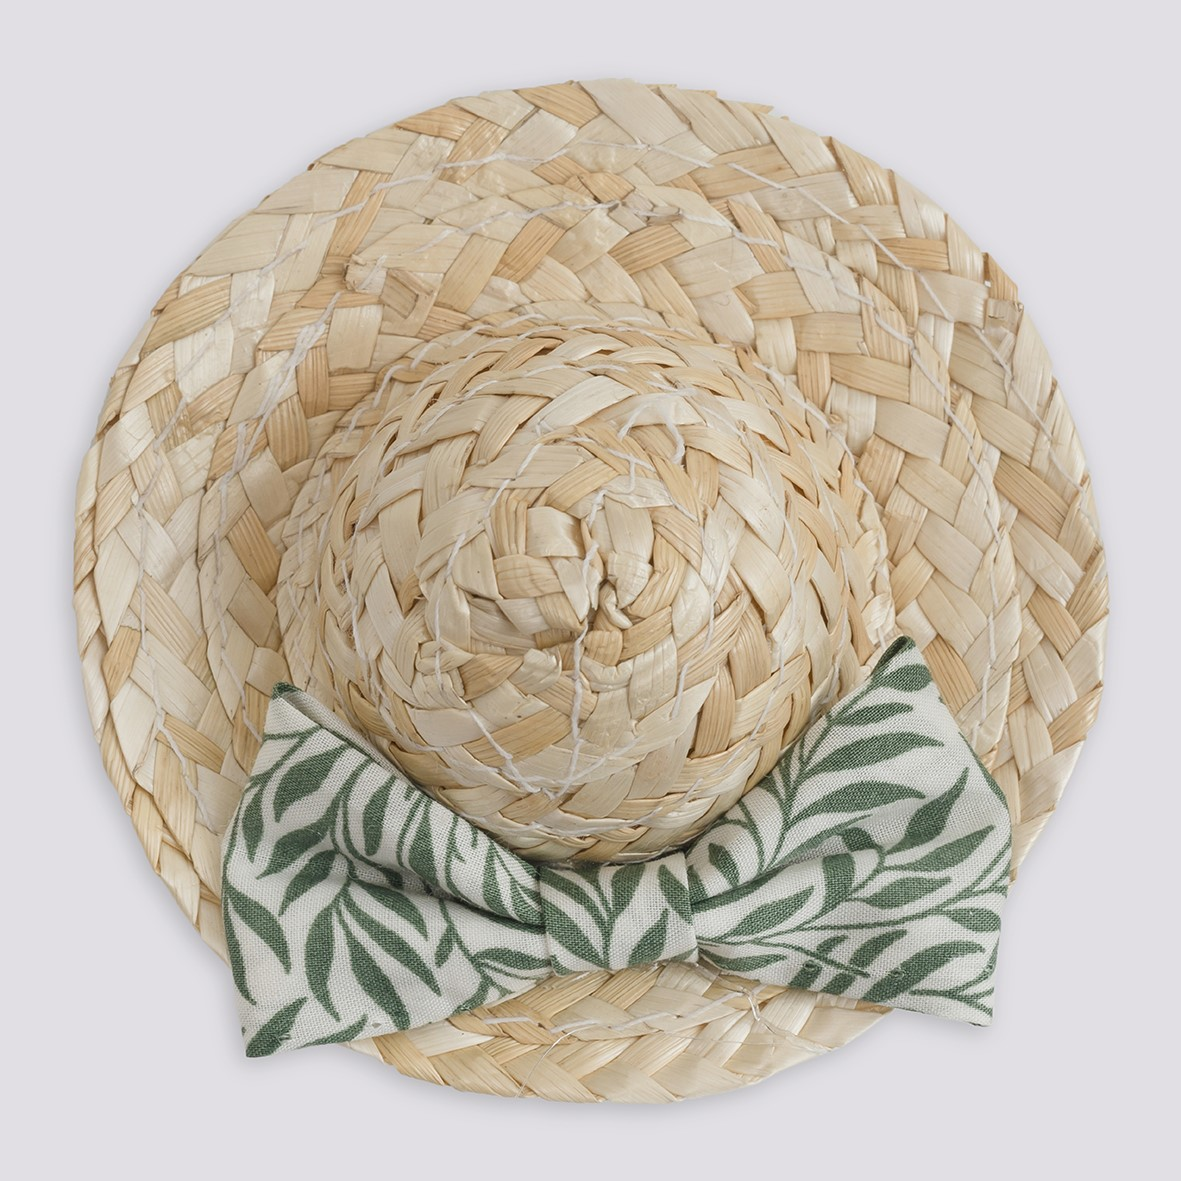 lillybilly-mini-straw-hat-barrette-willow-wood